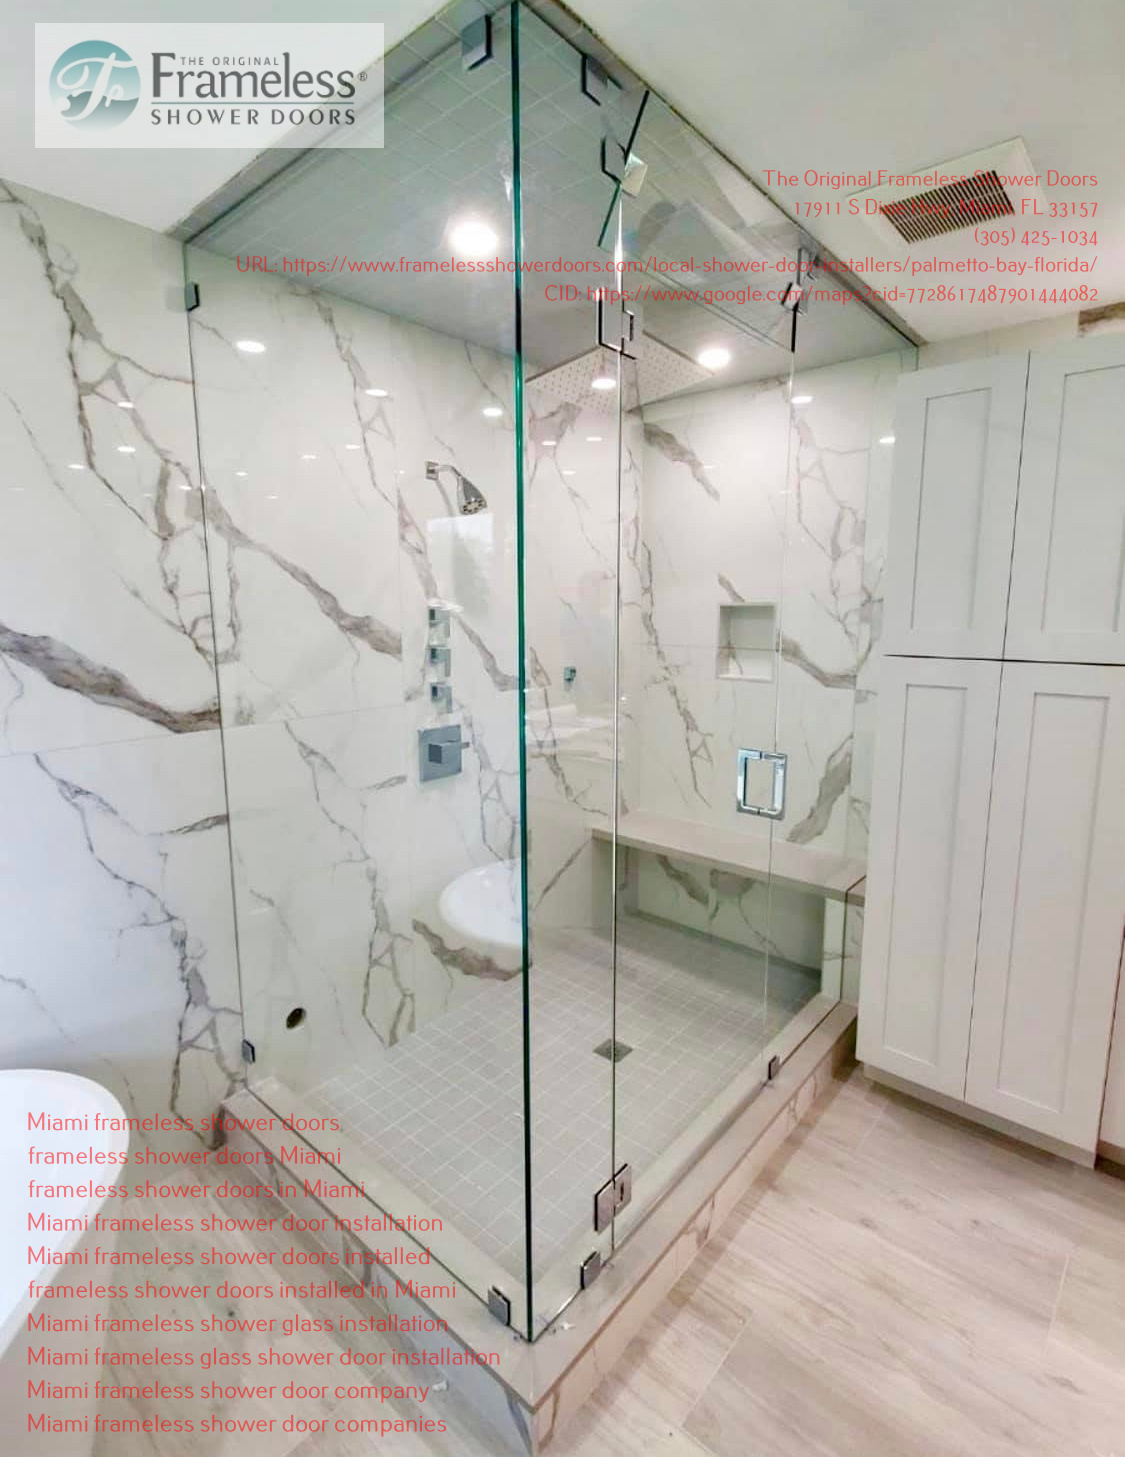 The Original Frameless Shower Doors Company Releases Information on New DIY Service